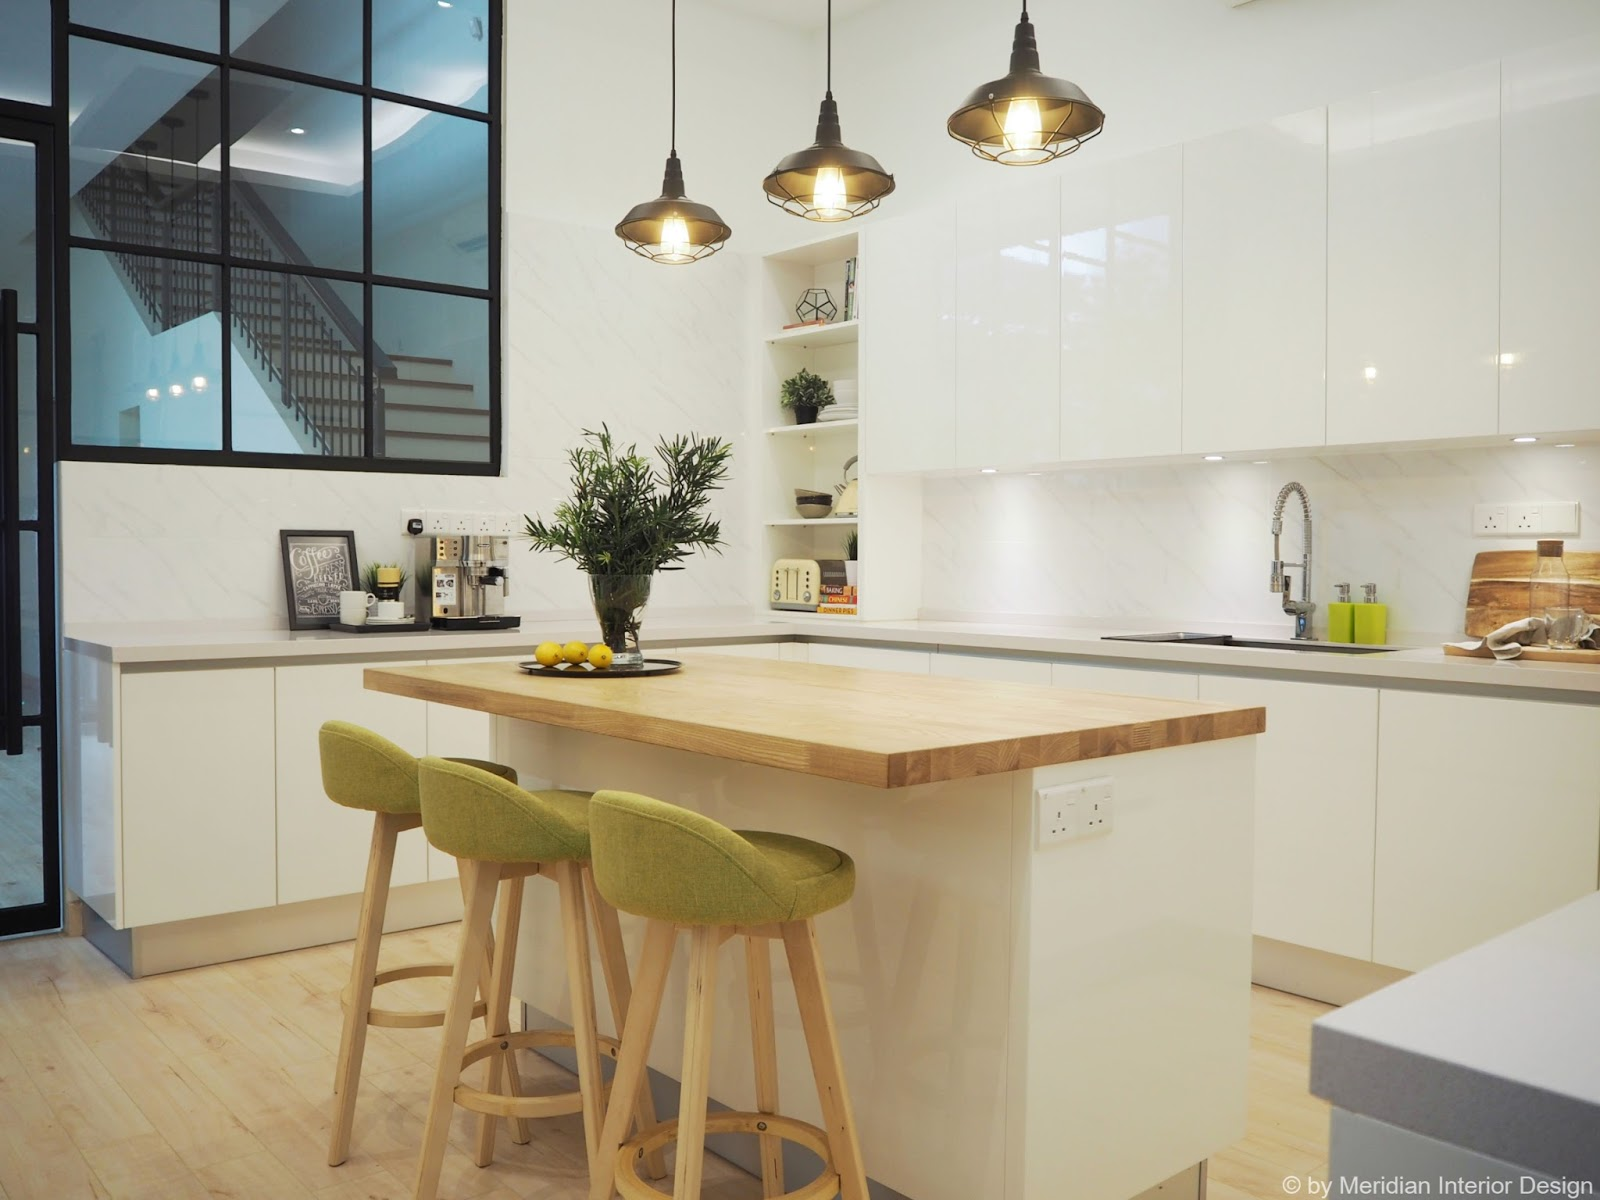 Meridian Interior Design And Kitchen Design In Kuala Lumpur Selangor Malaysia 5 Tips To